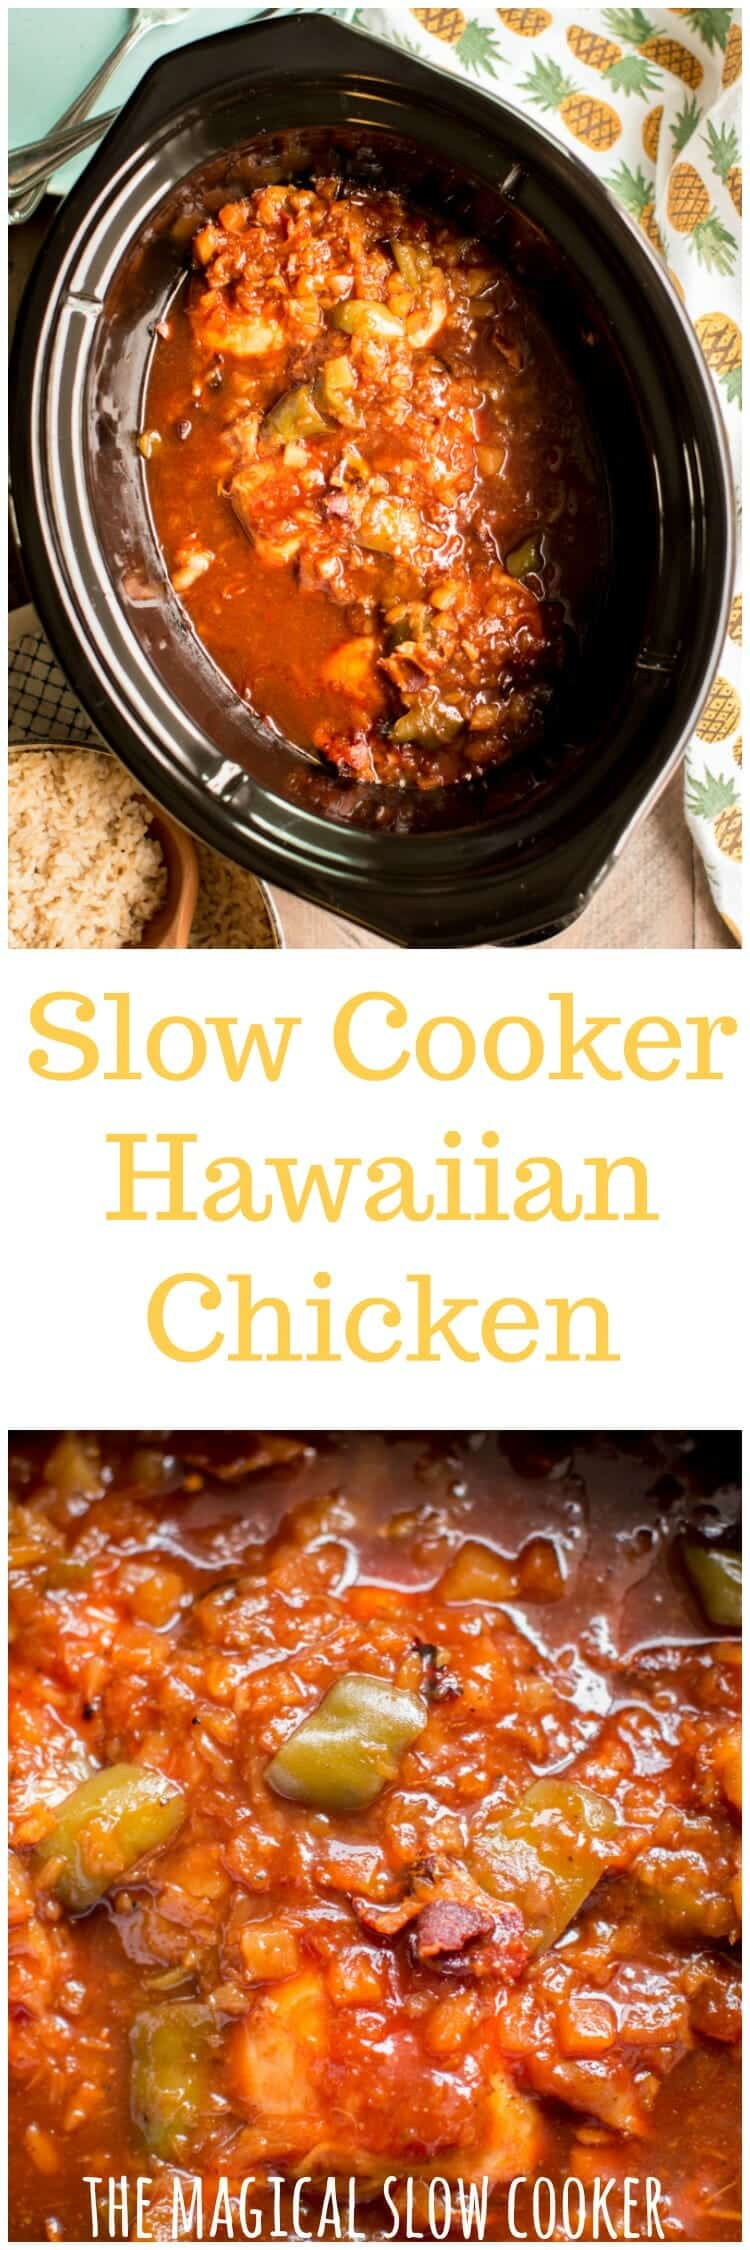 Slow Cooker Hawaiian Chicken